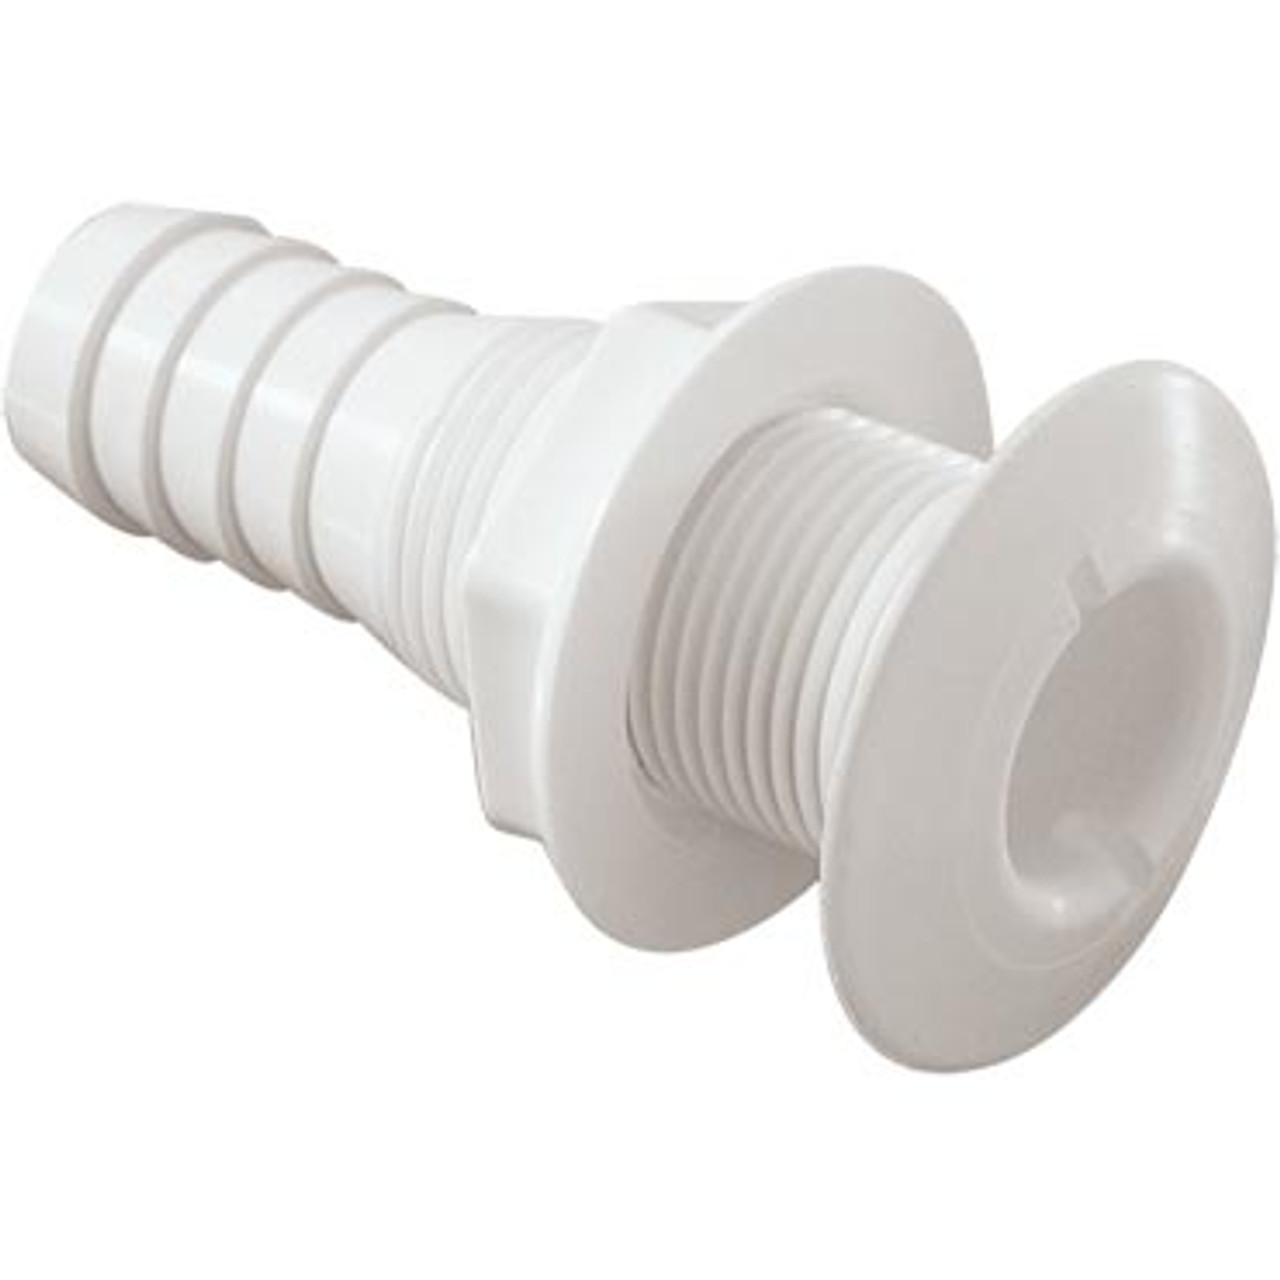 Ronstan Straight Skin Fittings/ Through Hull Fittings (PNP132A to PNP132C)